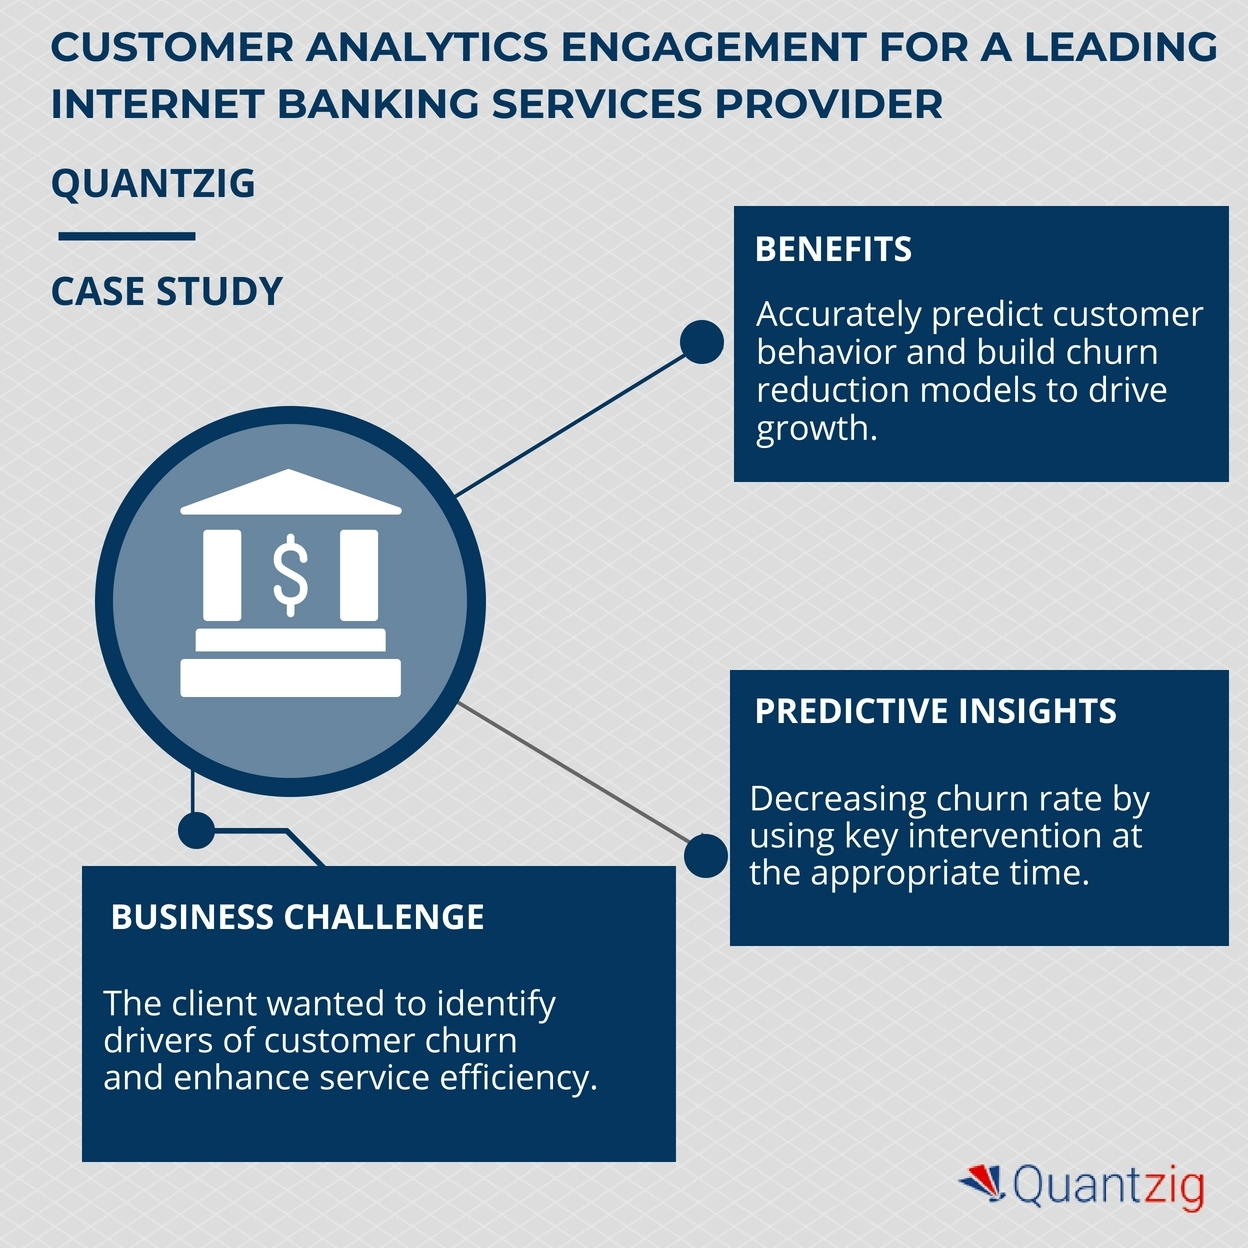 Quantzig\'s Customer Analytics Engagement Helped a Leading Internet ...